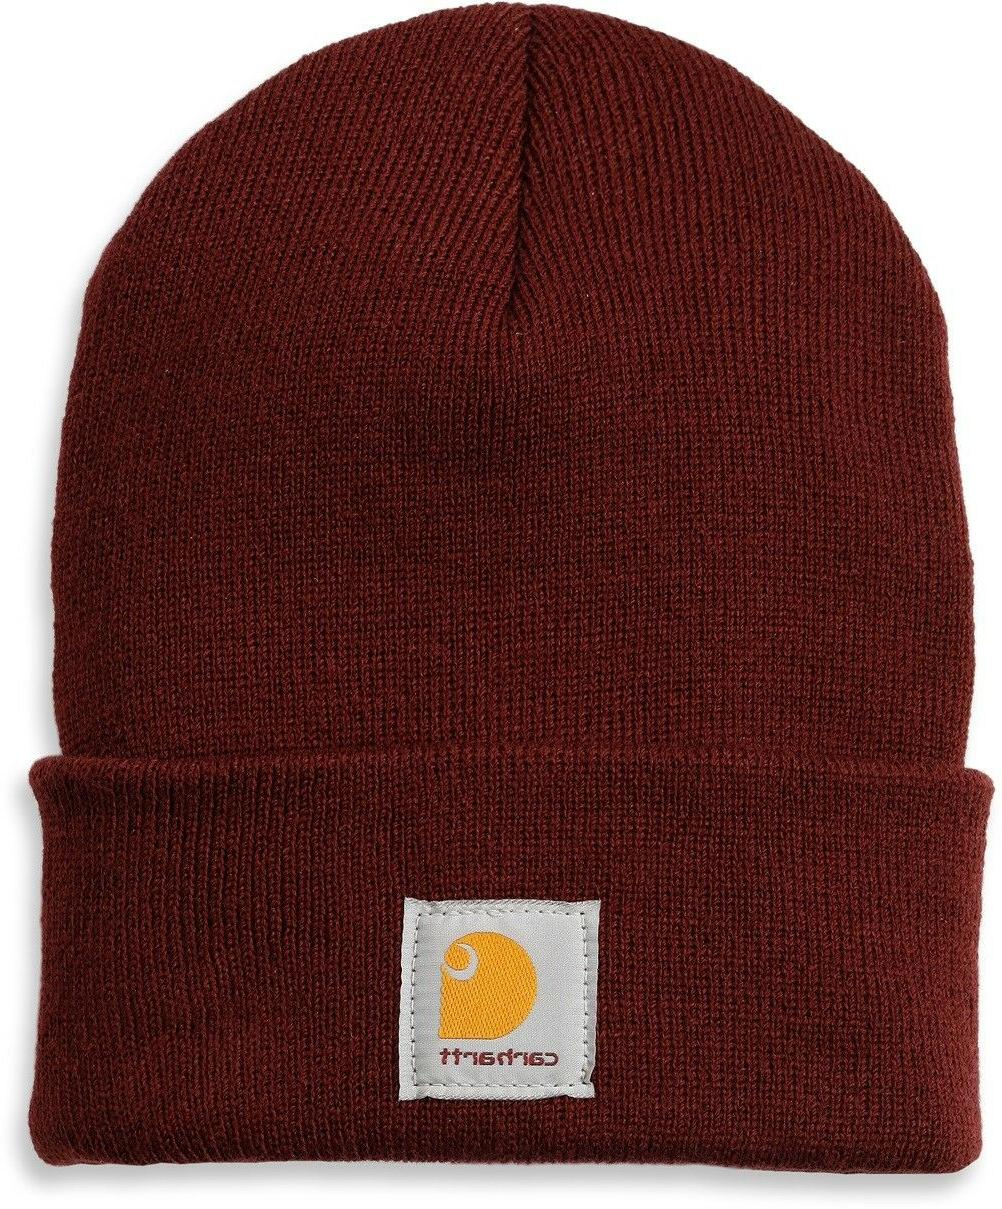 Carhartt One Size Stretchable Beanie Hat, Knit 24 Colours